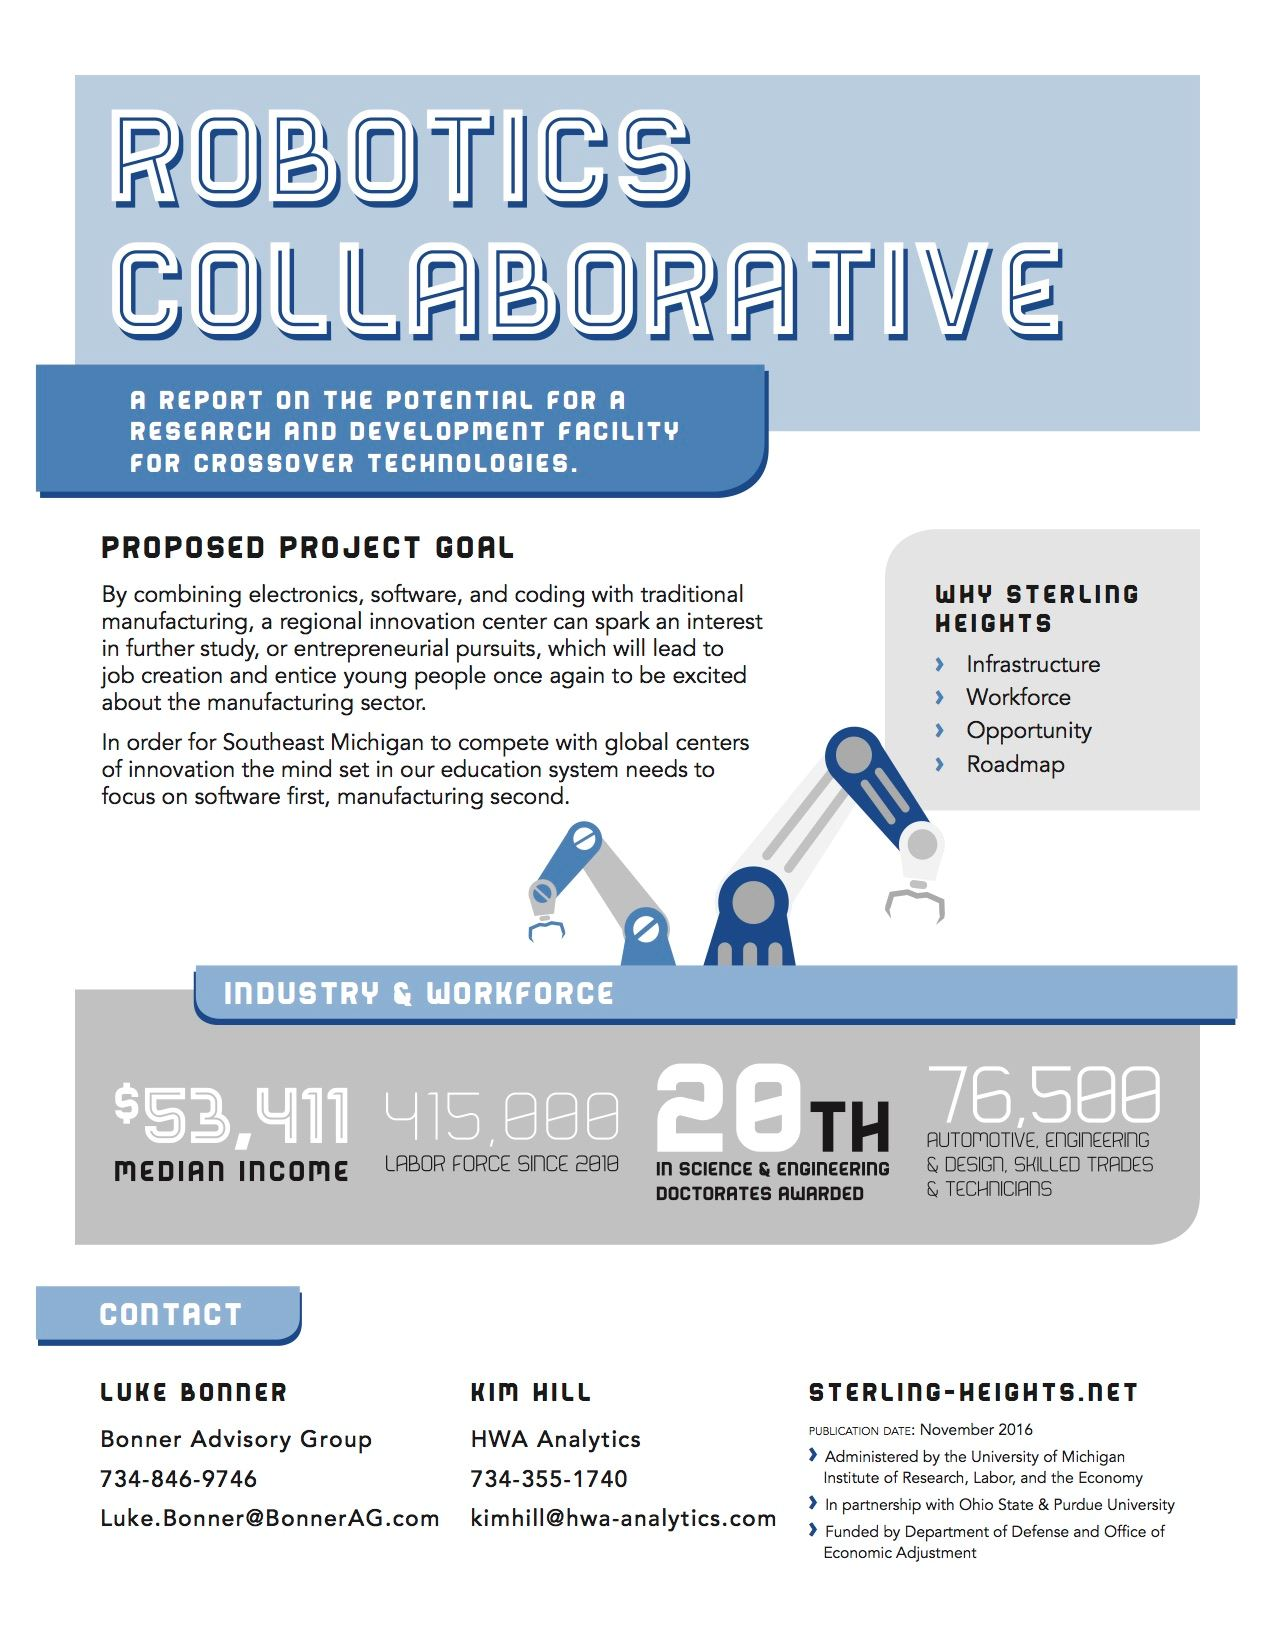 Robotics Collaborative Infographic